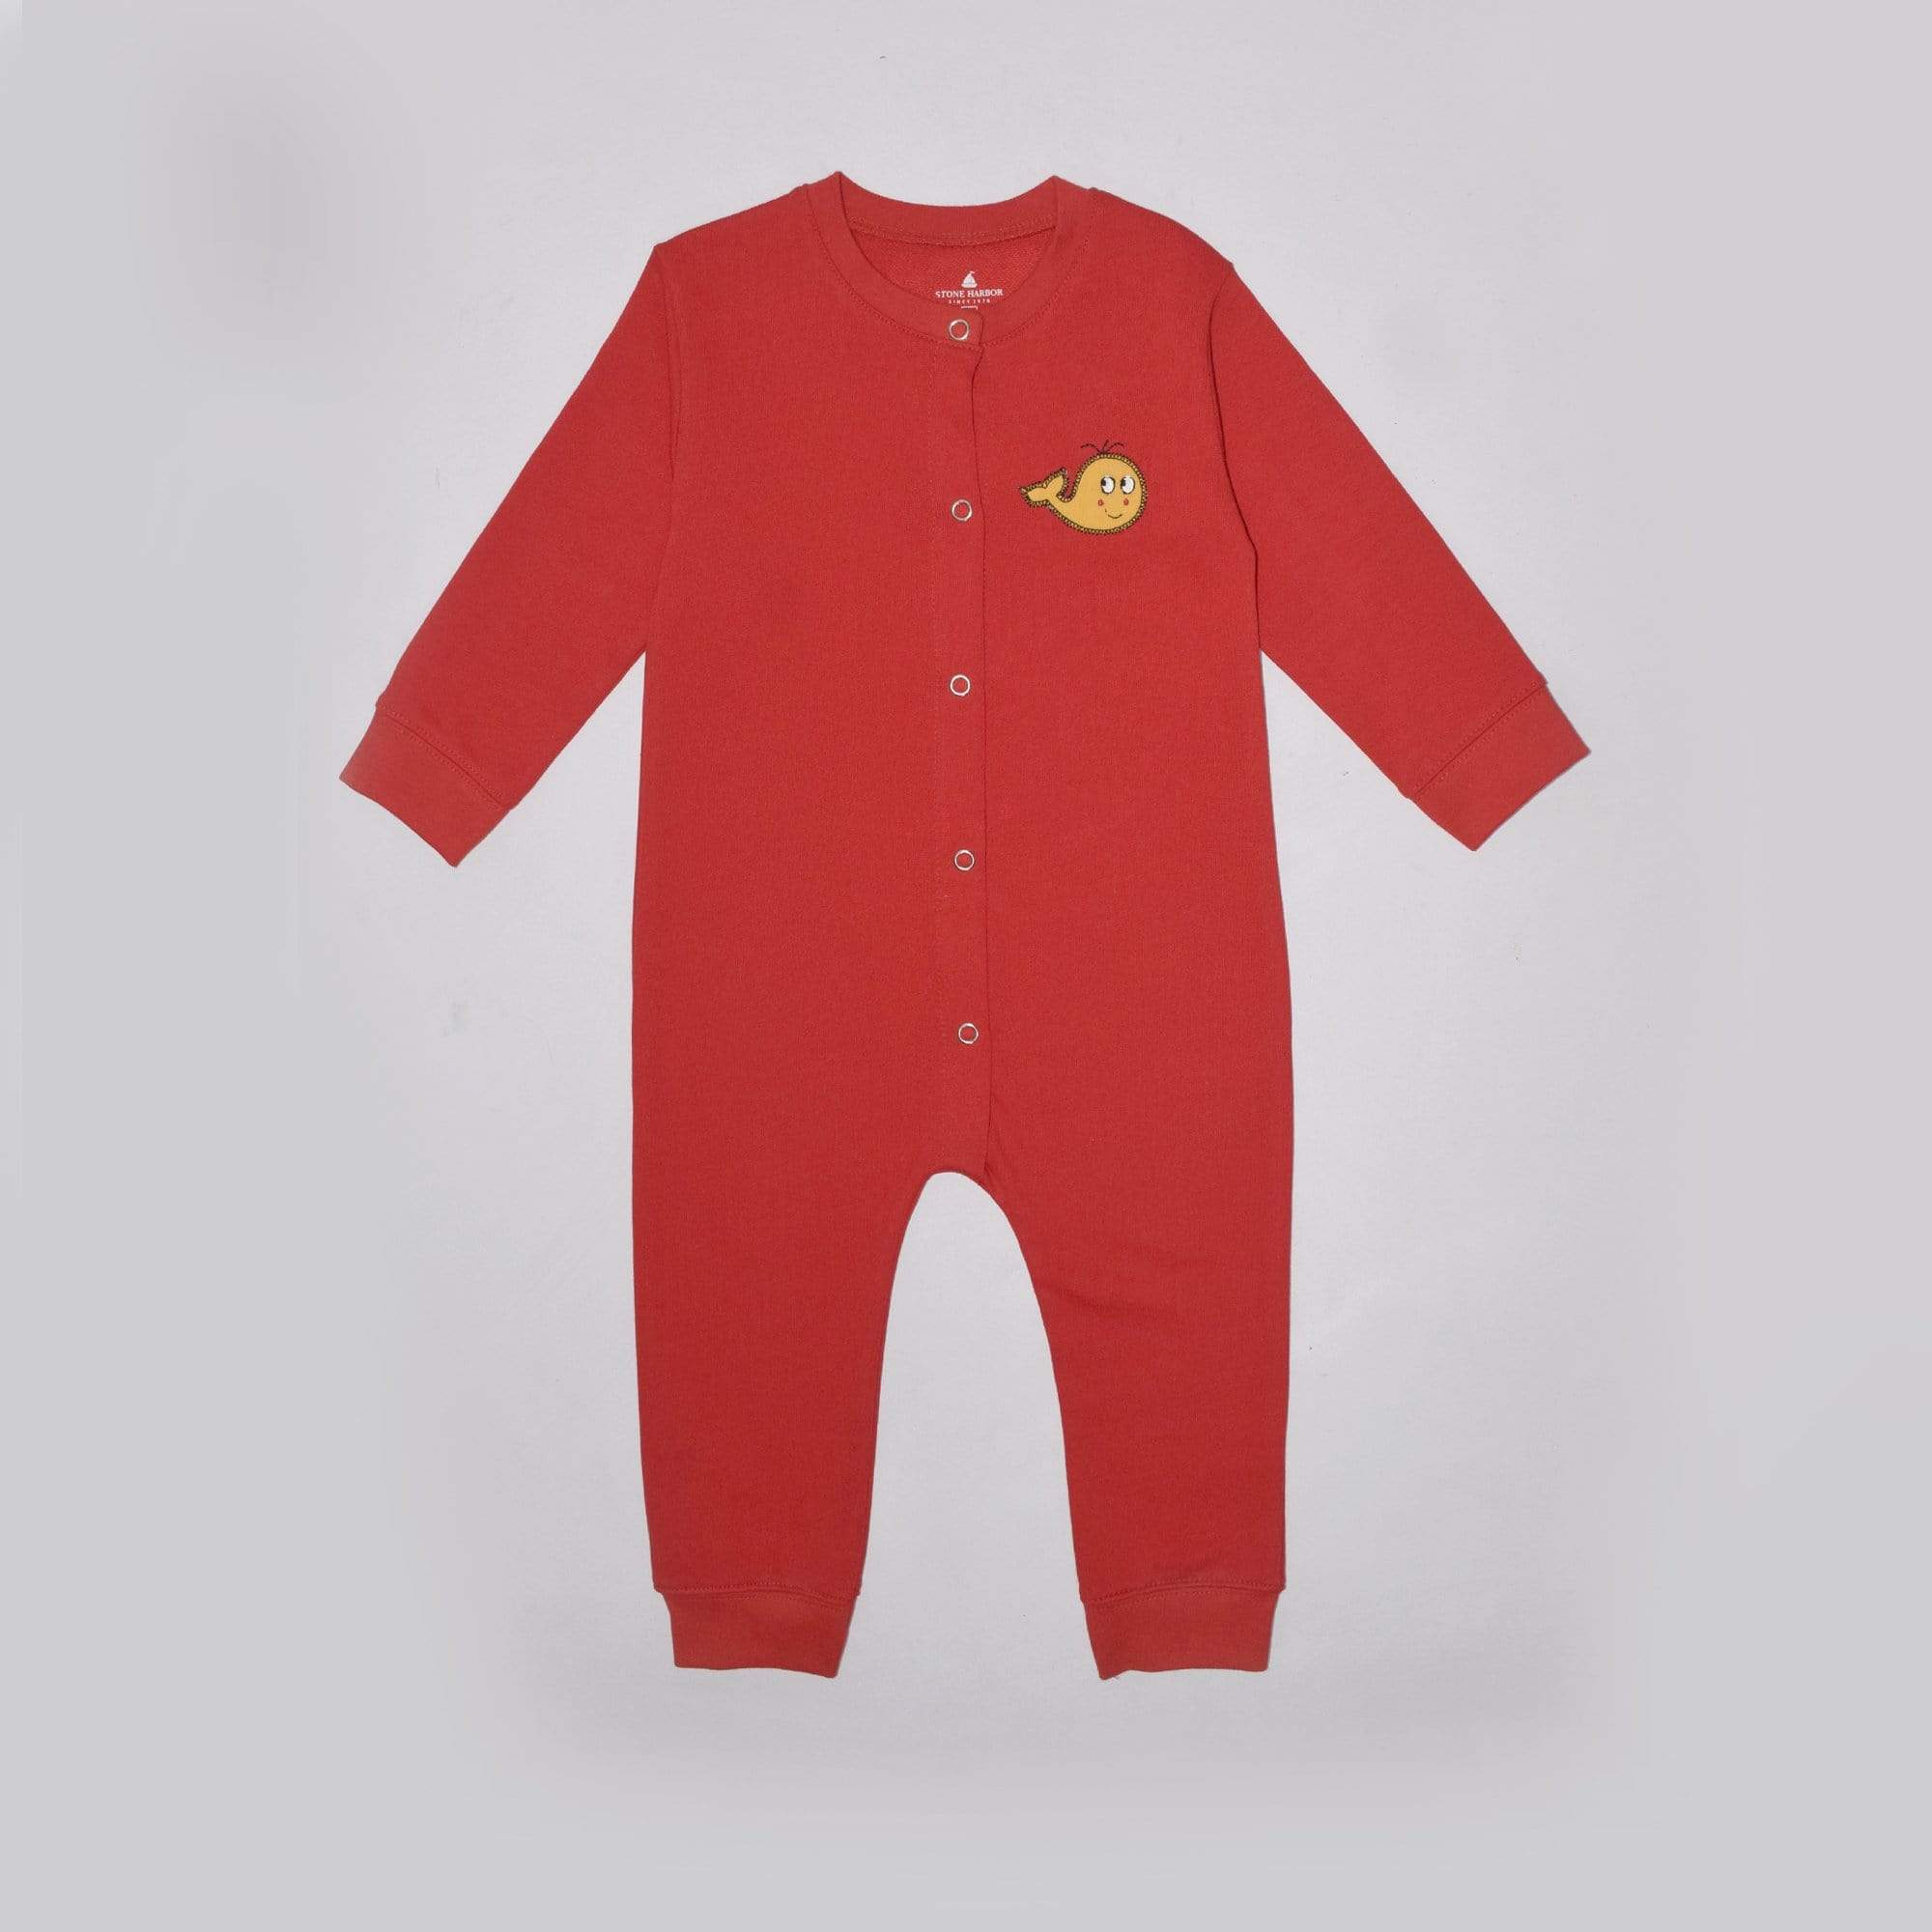 Stone Harbor Kid's Romper Red / 0-3 Months Kid's Stone Harbor UNISEX Eyetone Fleece Romper